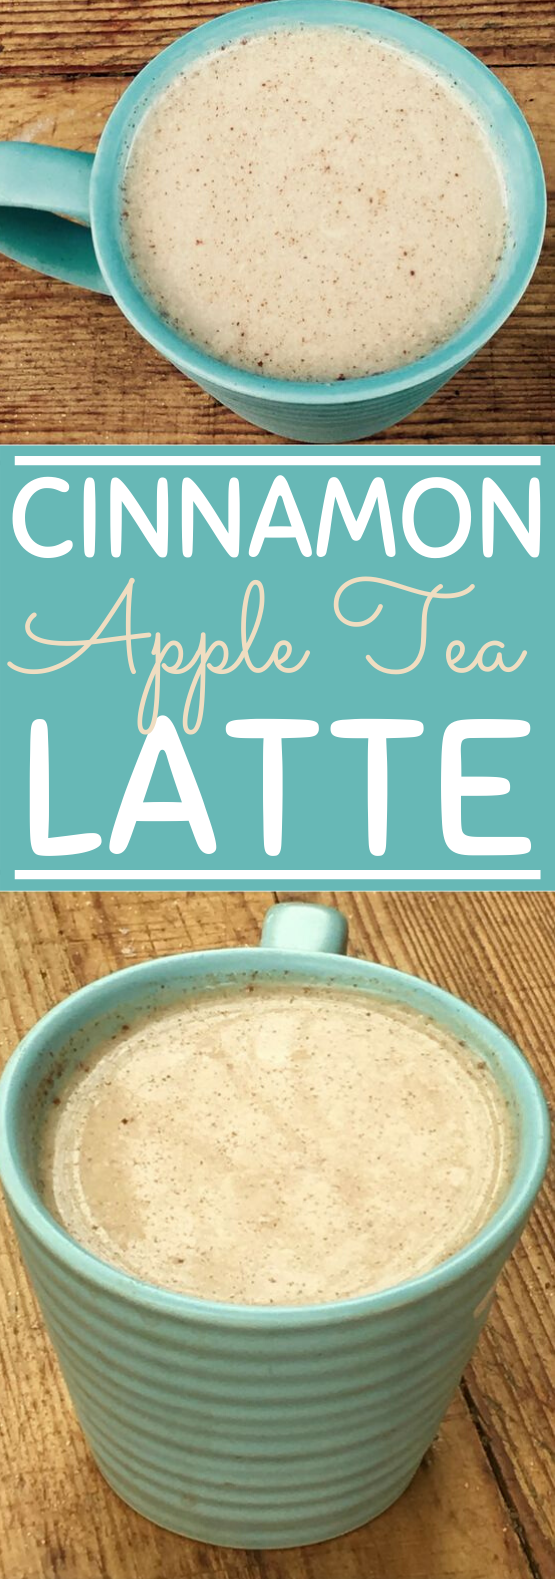 Cinnamon Apple Tea Latte #drinks #latte #tea #winter #recipes